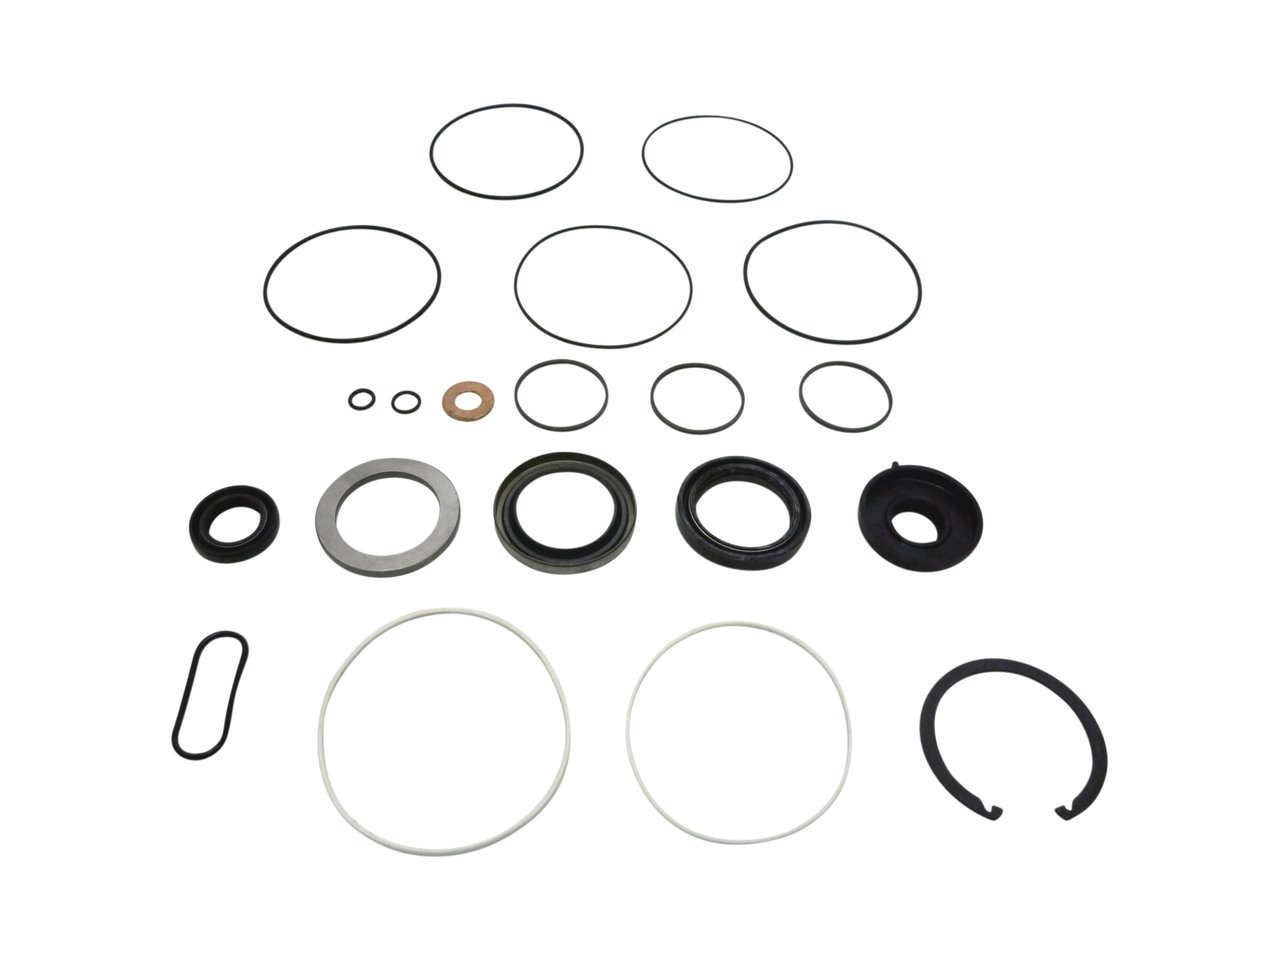 Power Steering Box Seal Kit for GQ Y60 Nissan Patrol 1988-1993